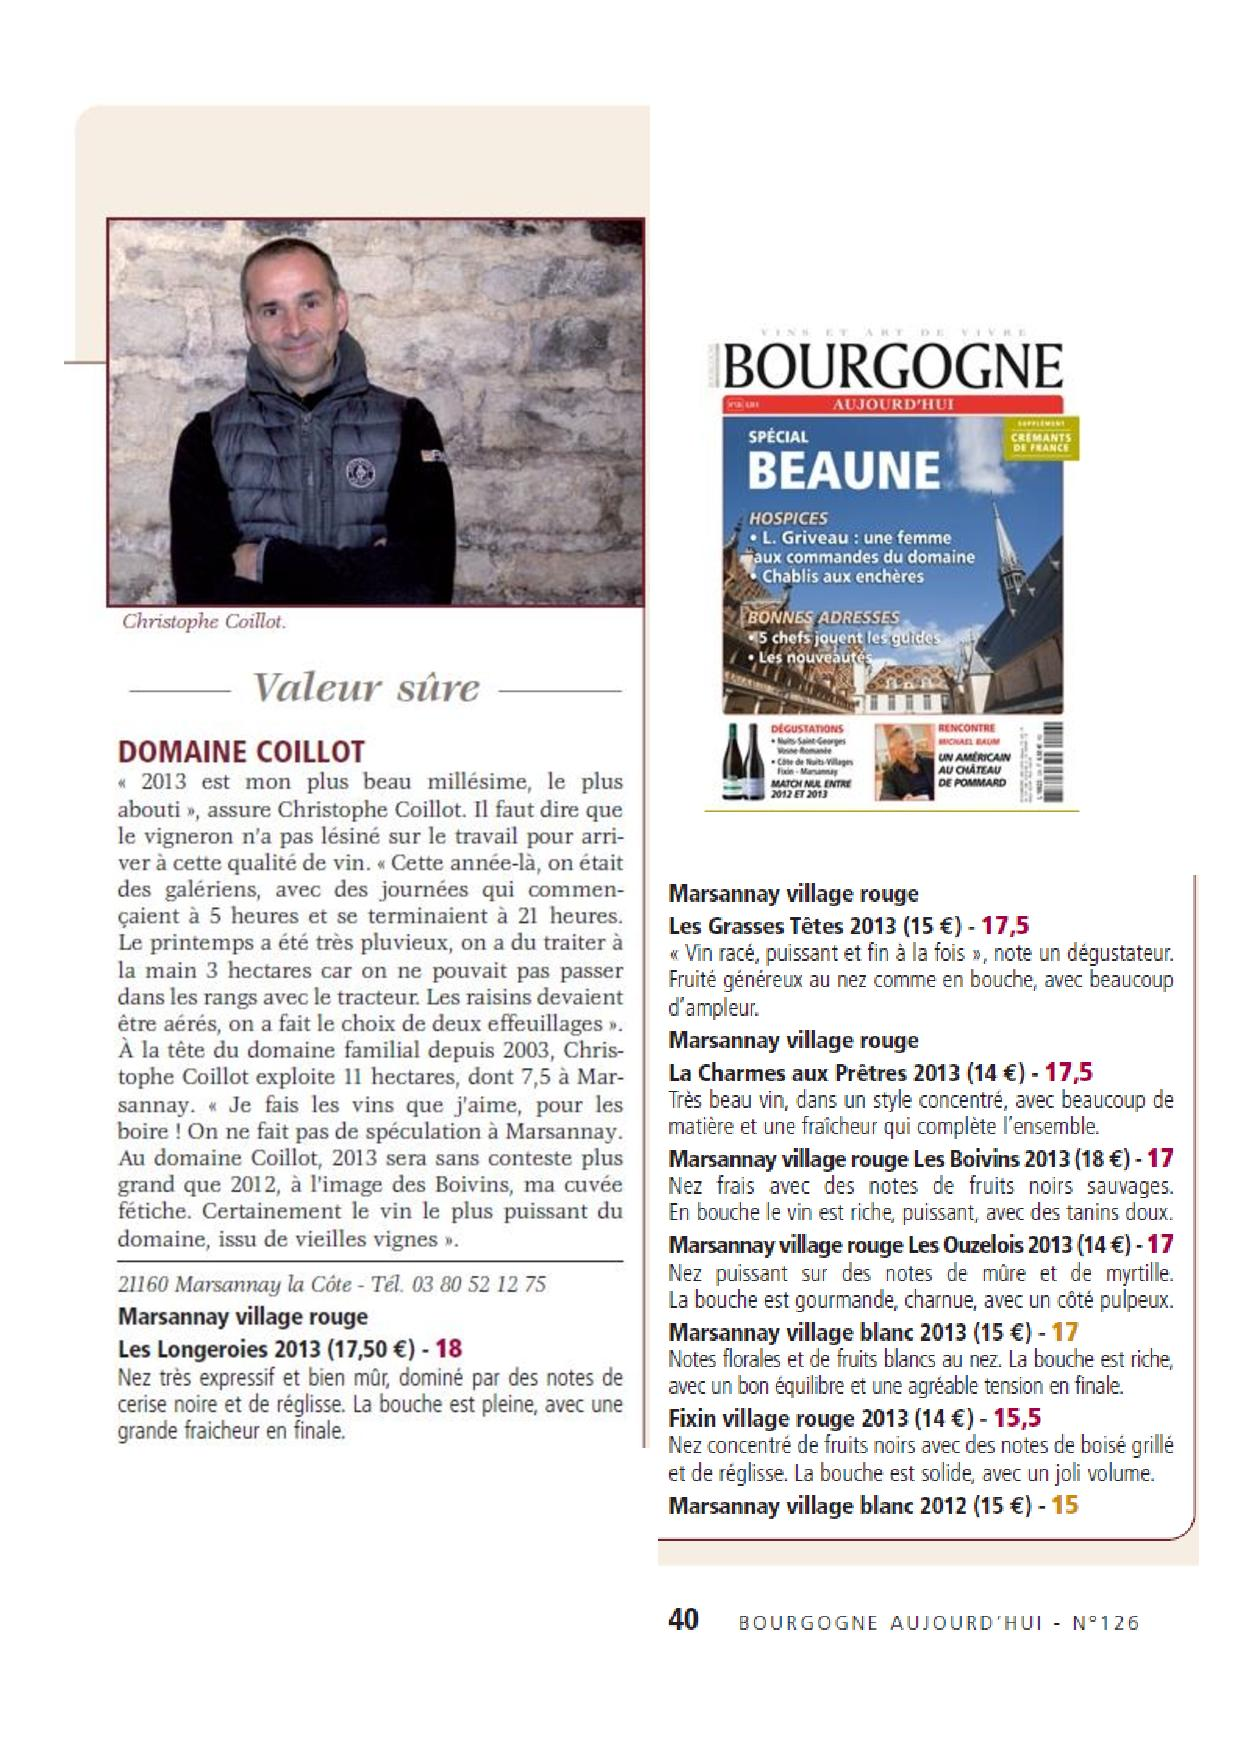 Article_BourgogneAujoudhui_Coillot_n126-page-001